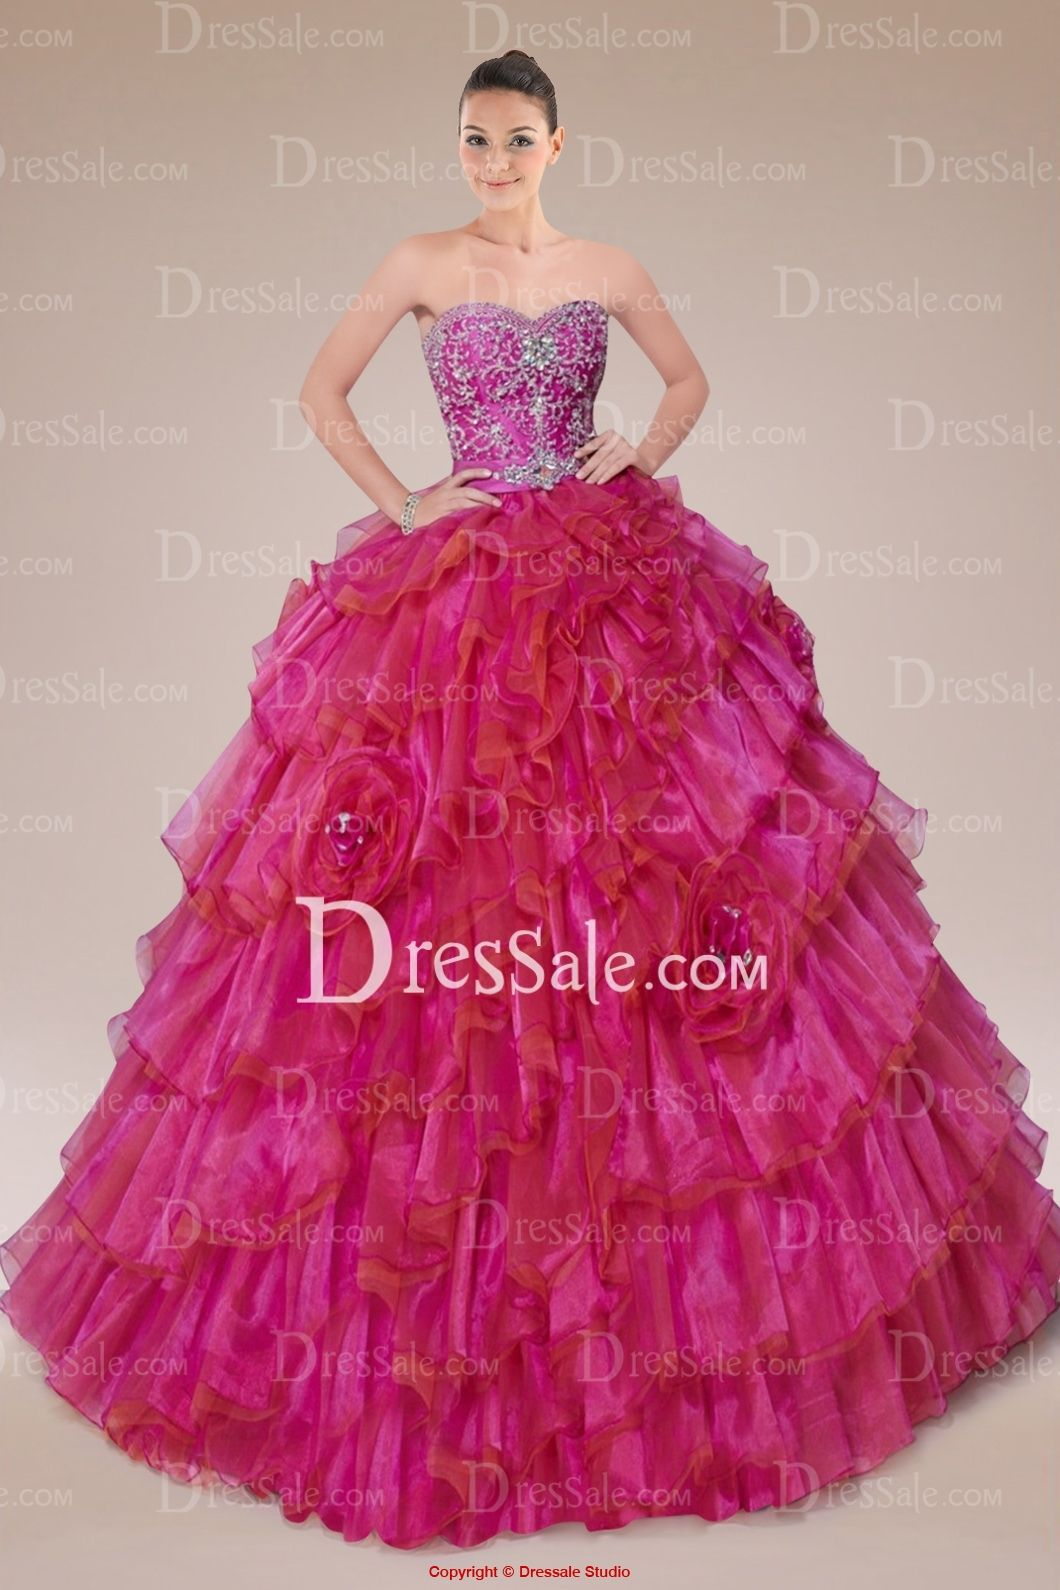 Classy Sweetheart Neckline Quinceanera Gown with Appliqued Bodice and Tiered Ruffles